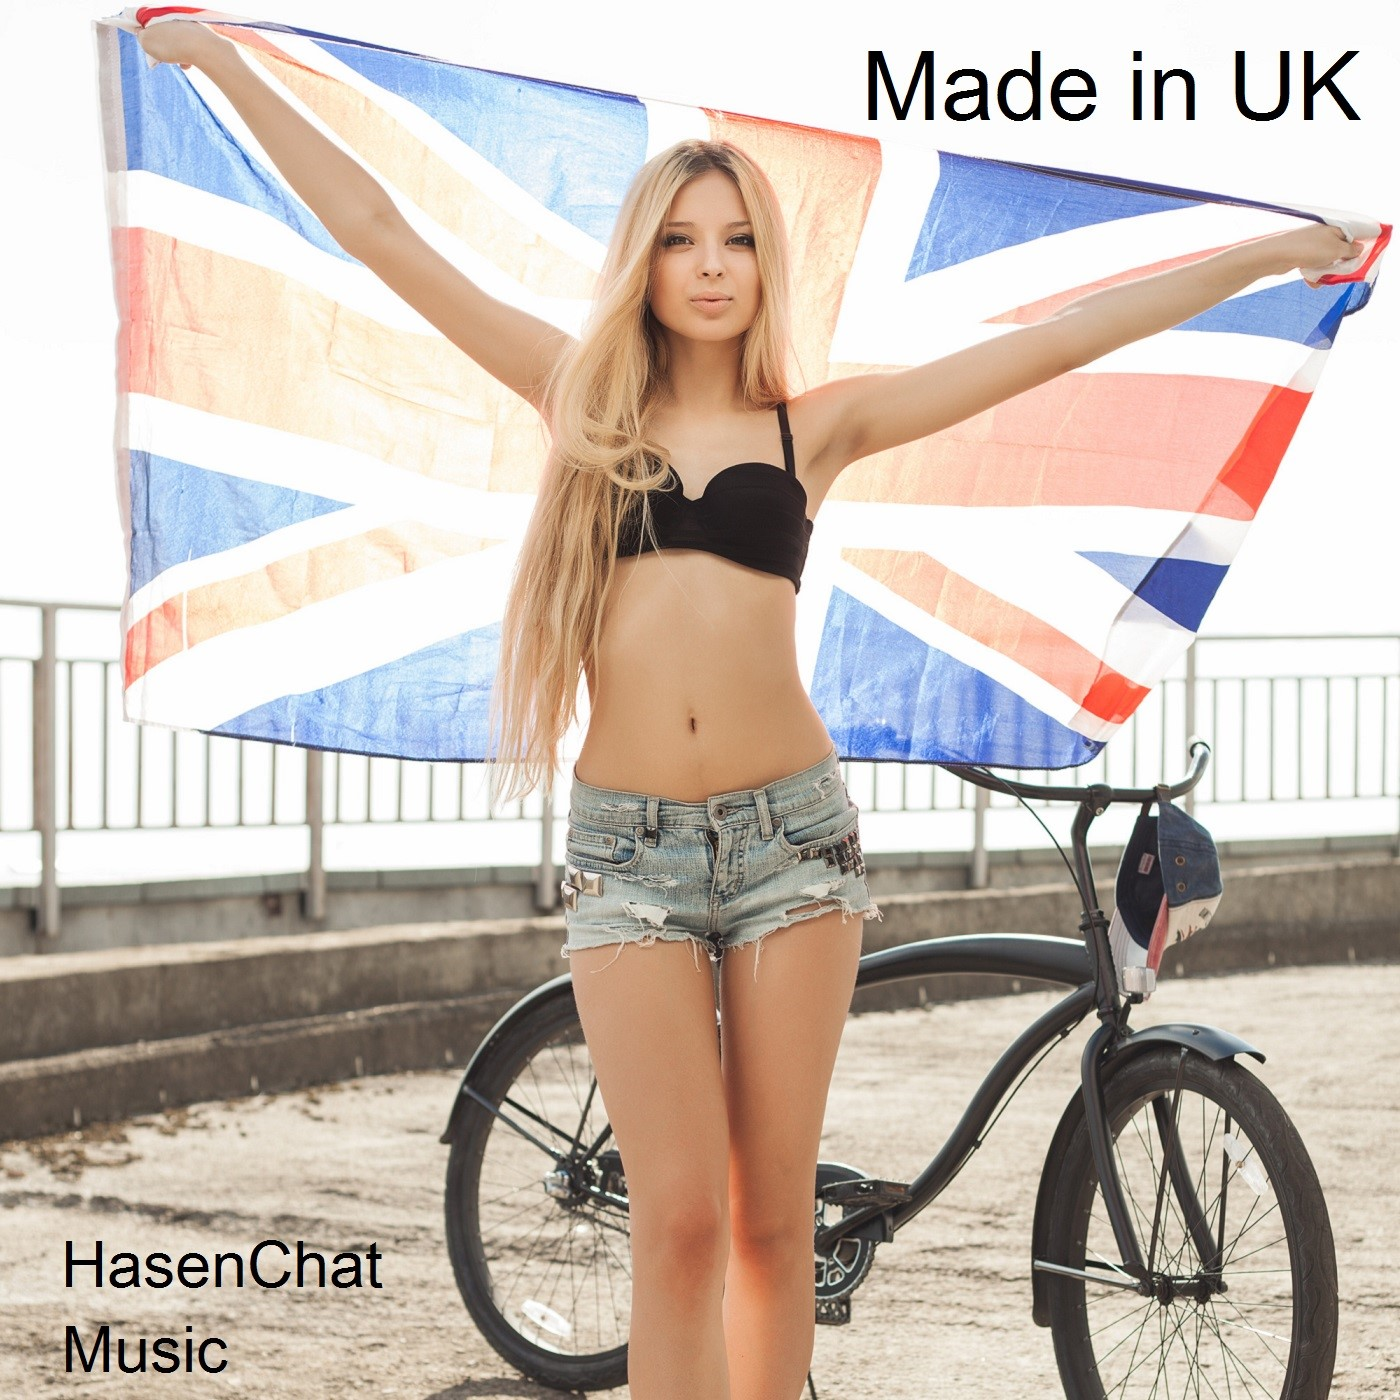 HasenChat Music - Made in UK